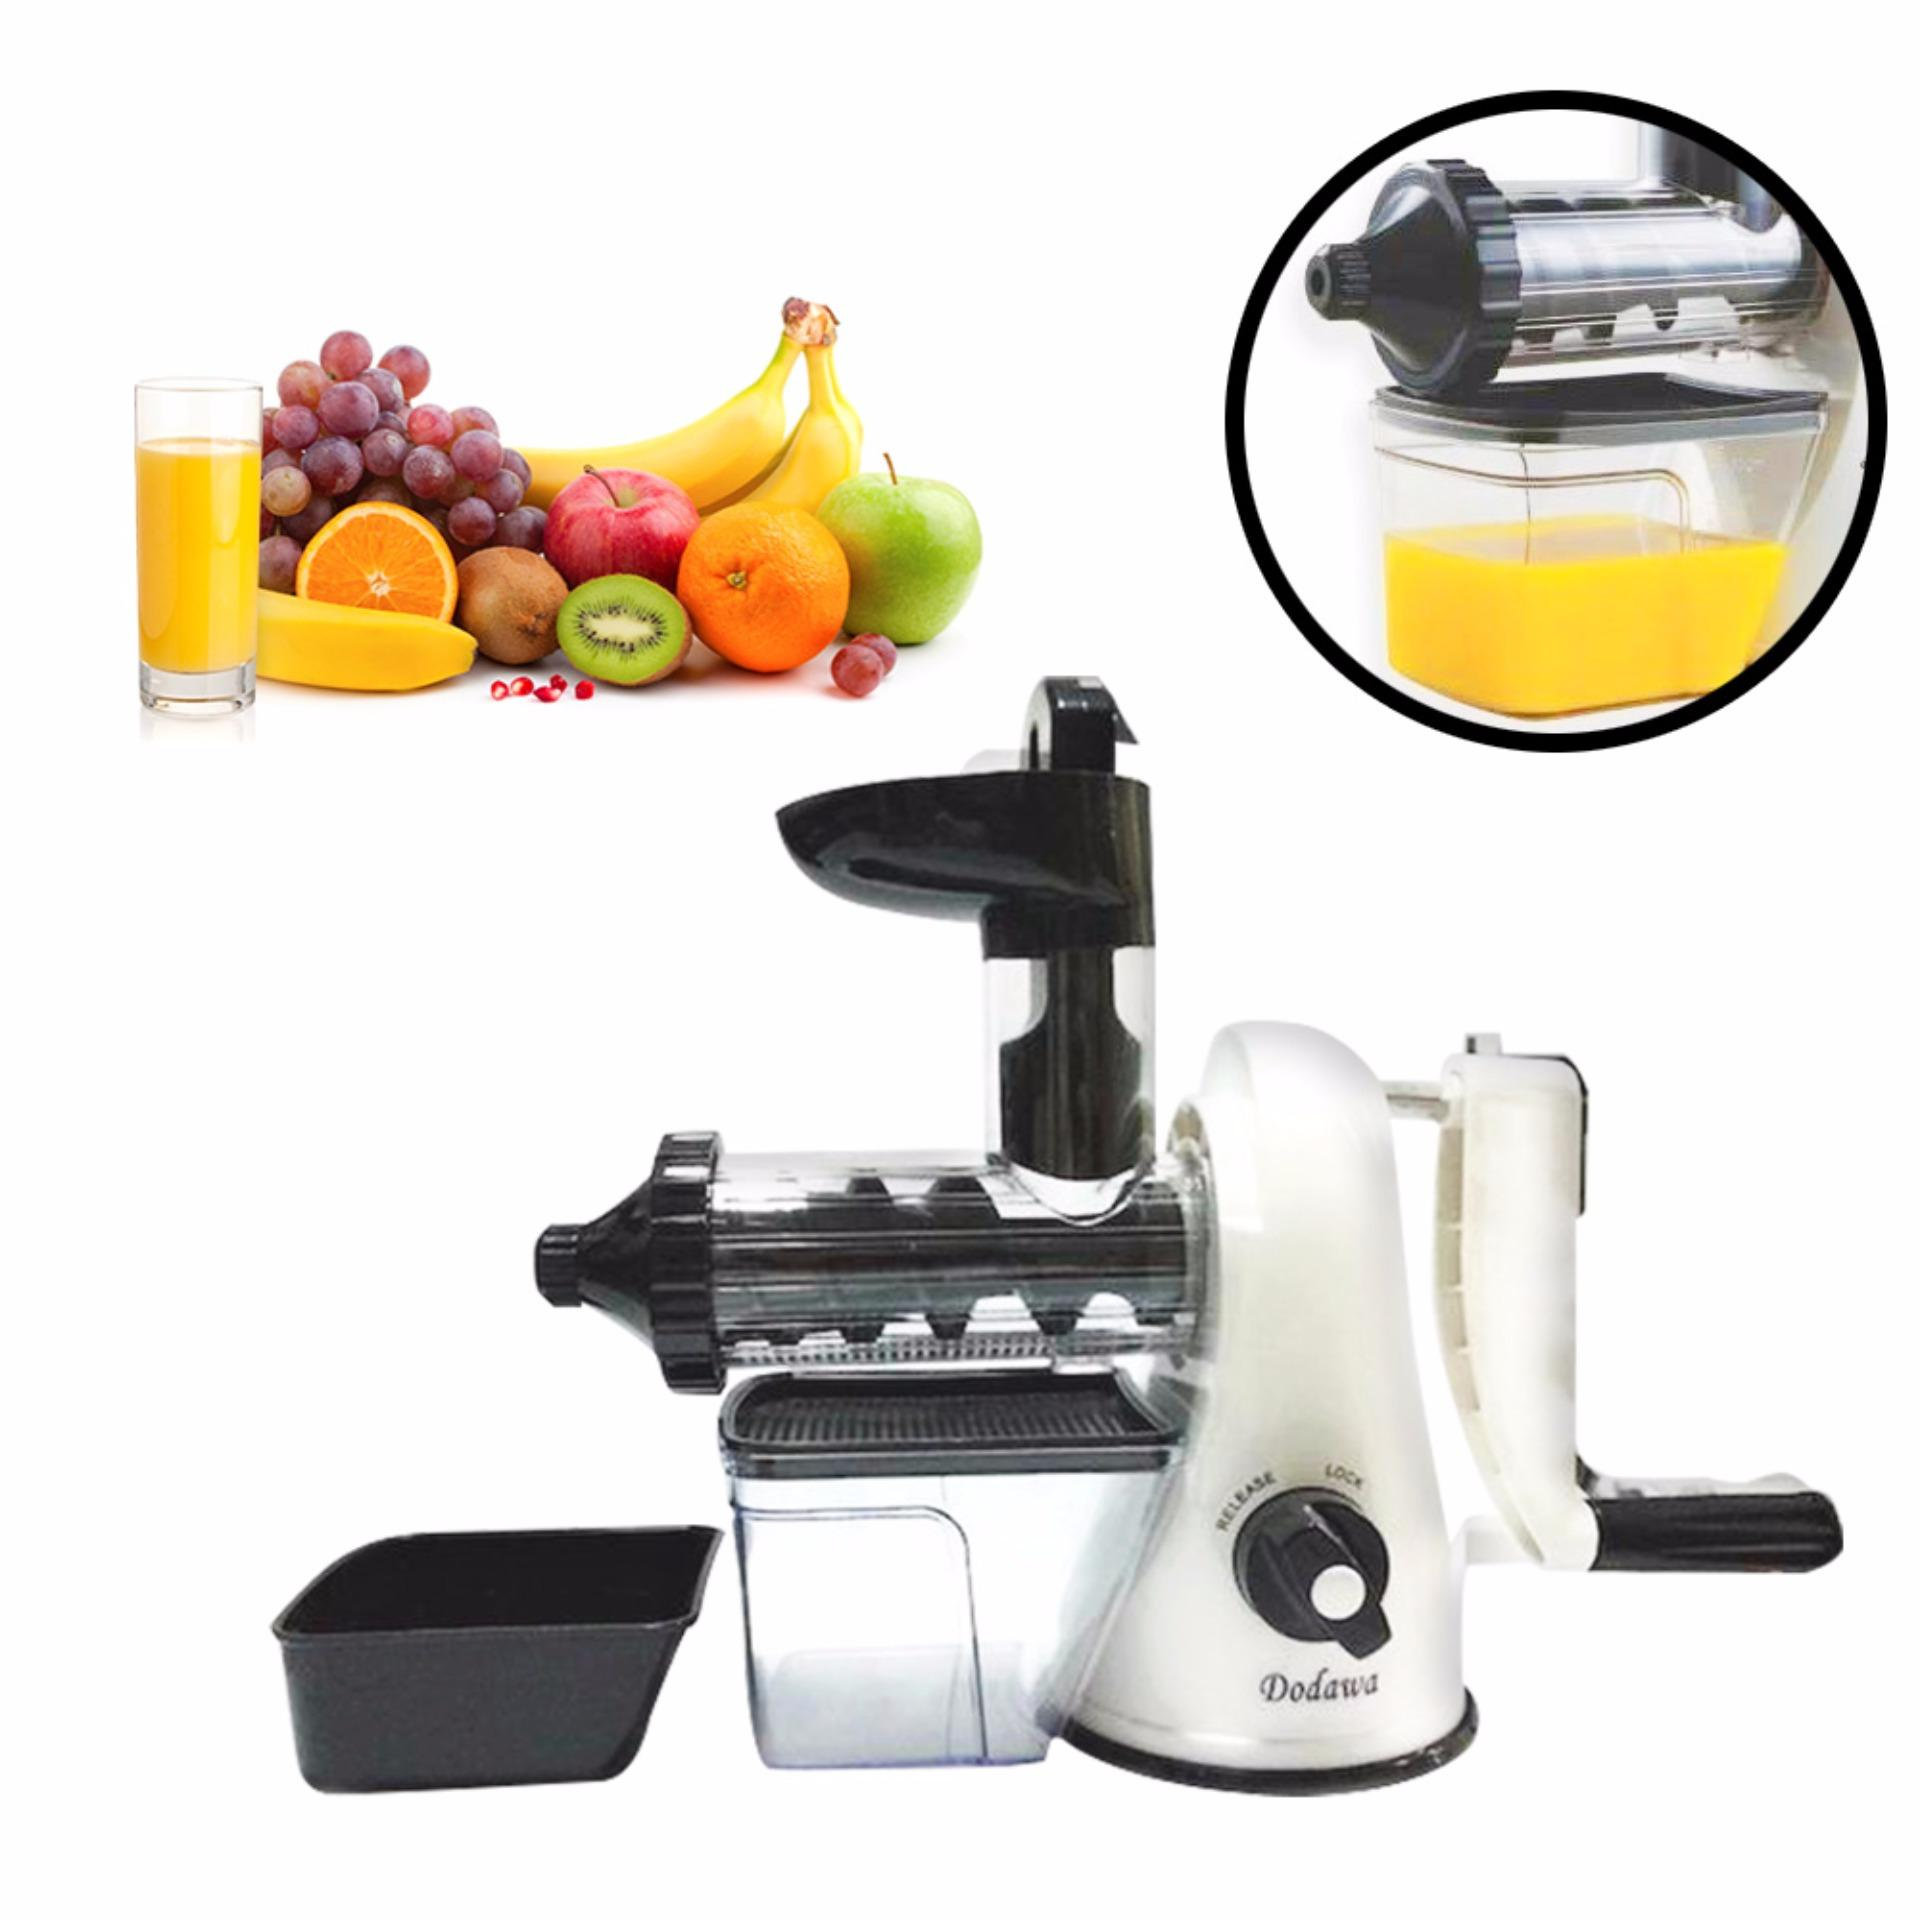 Manual Slow juicer Dodawa DD-830 Mesin jus .